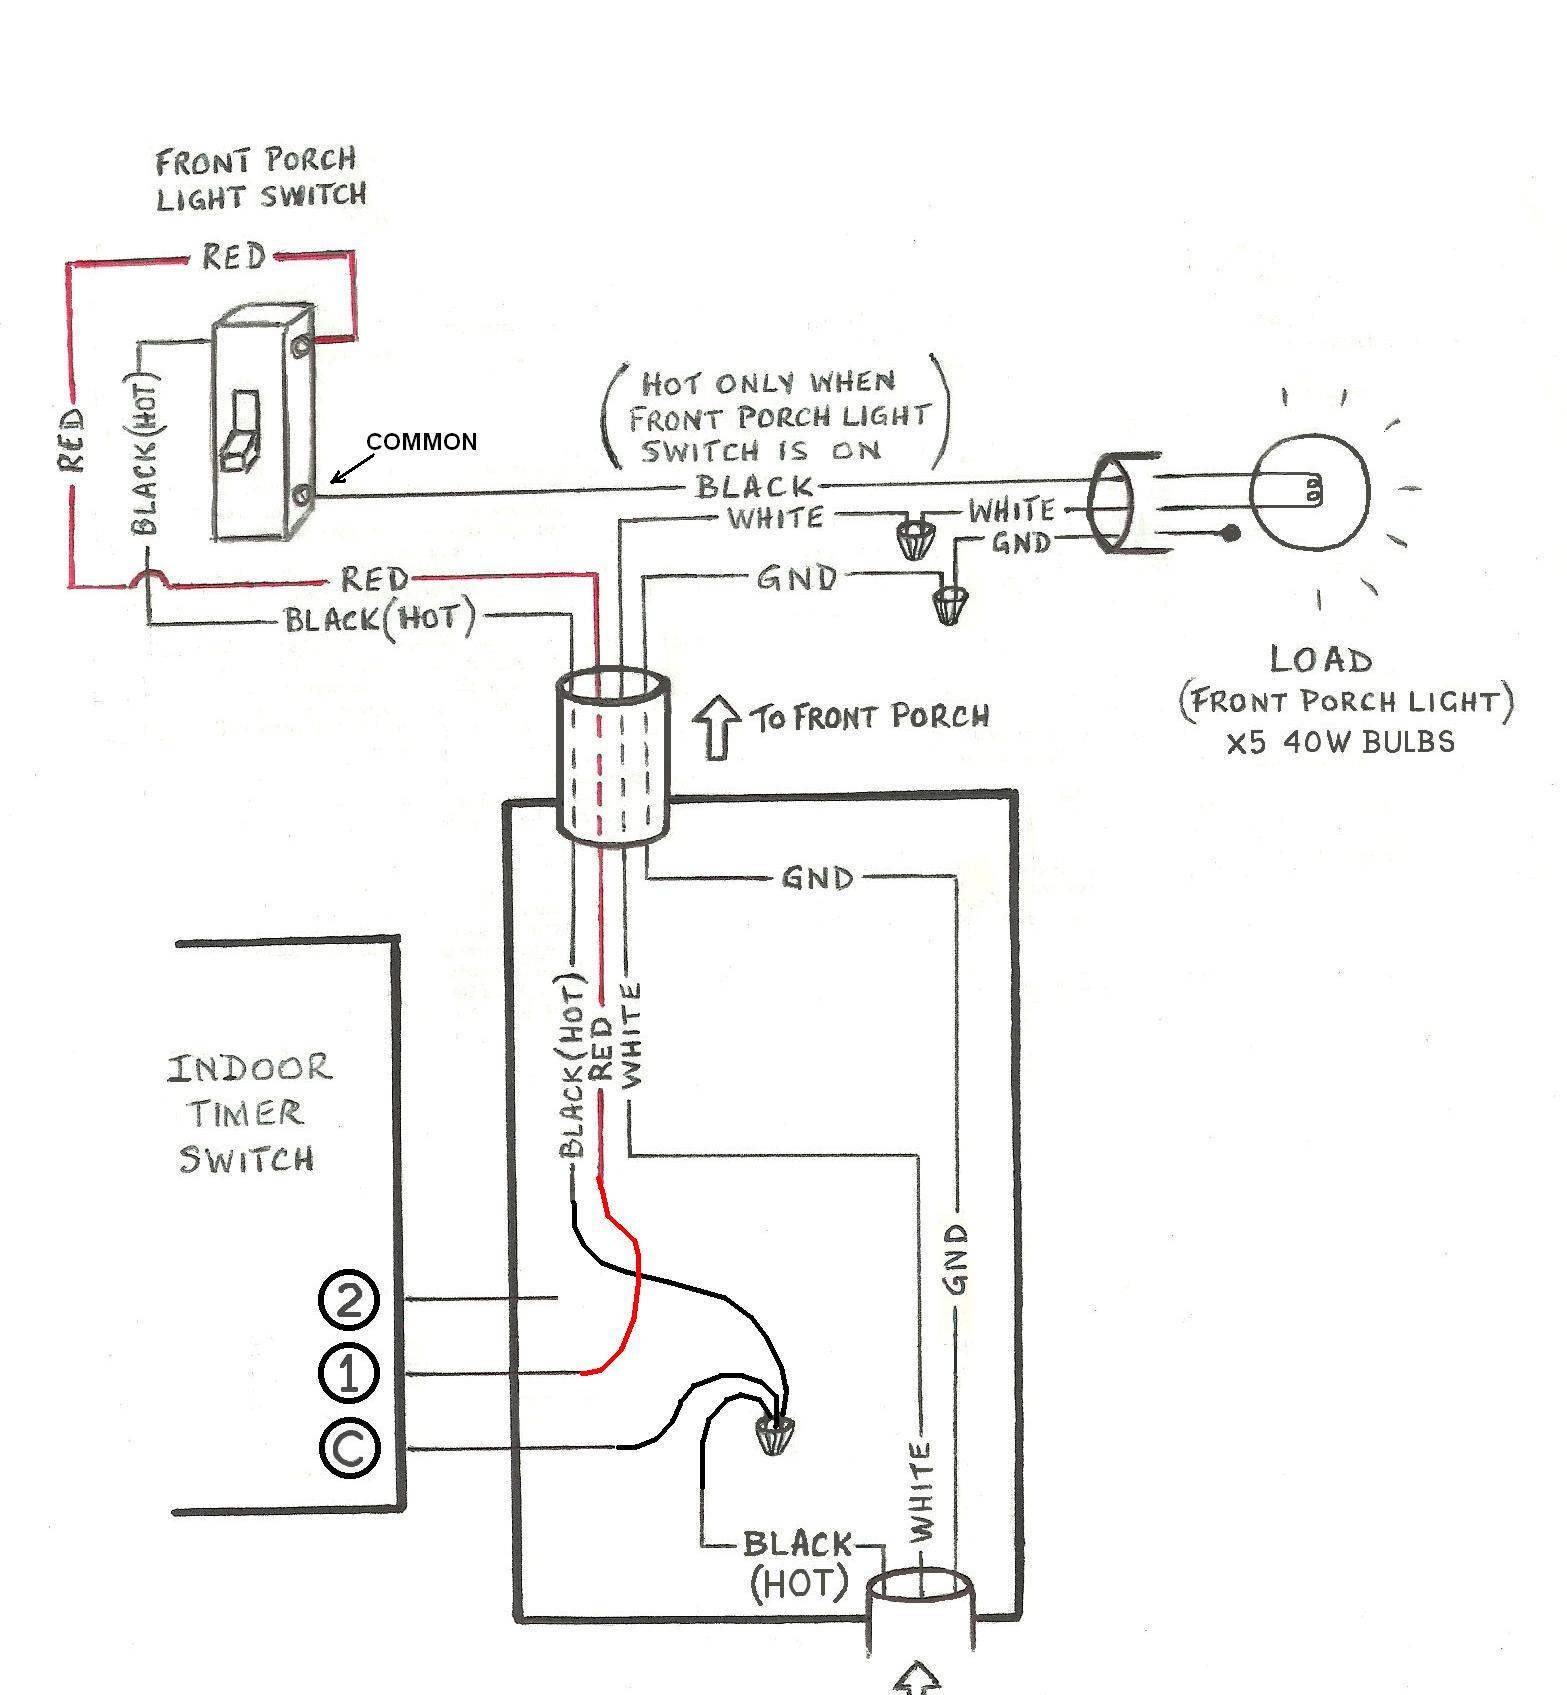 hight resolution of light switch timer along with timer light switch circuit diagram street light timer wiring diagram light timer wiring diagram